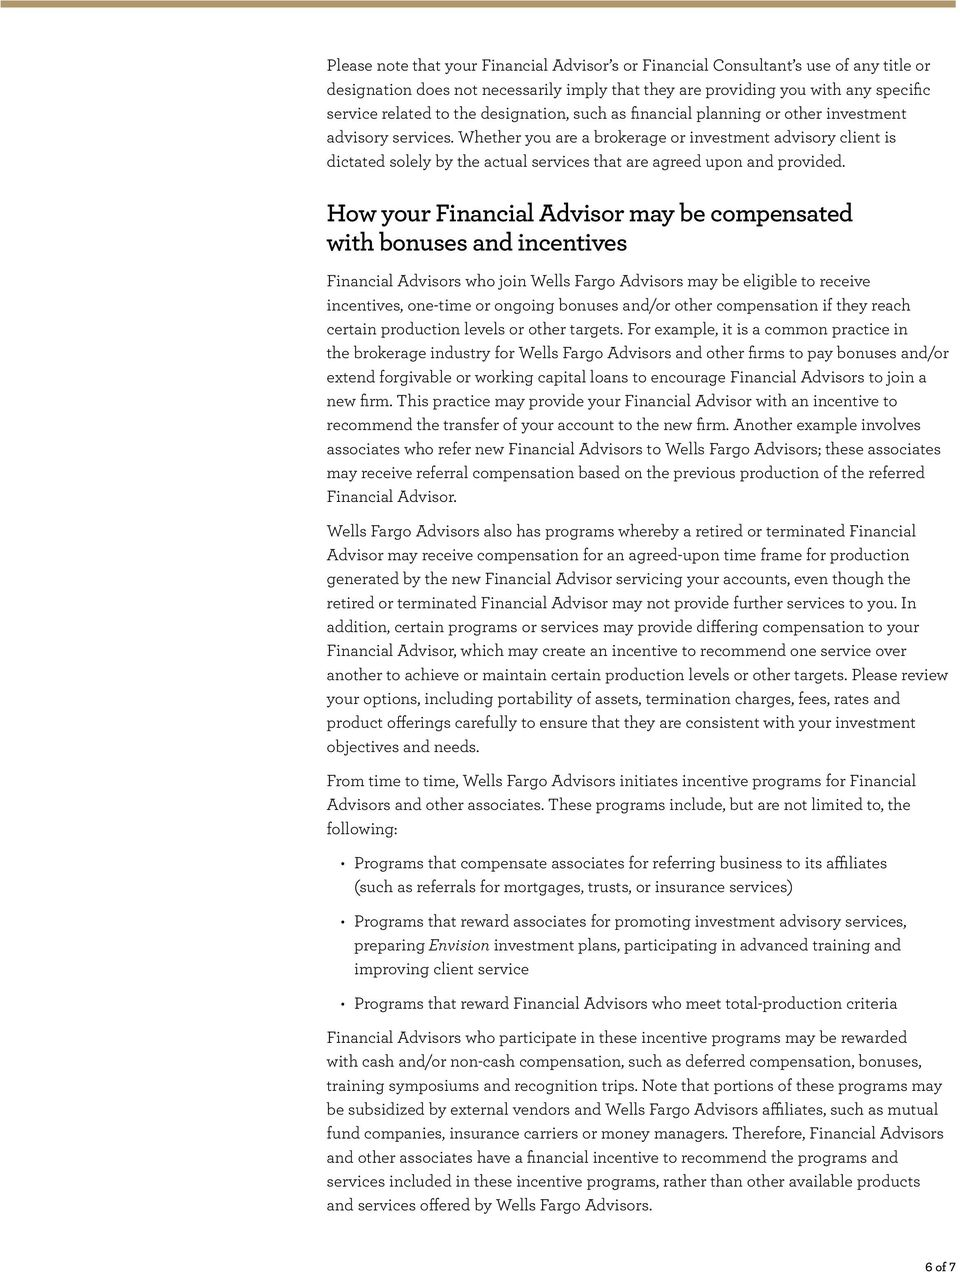 Investment advisory and brokerage services - PDF